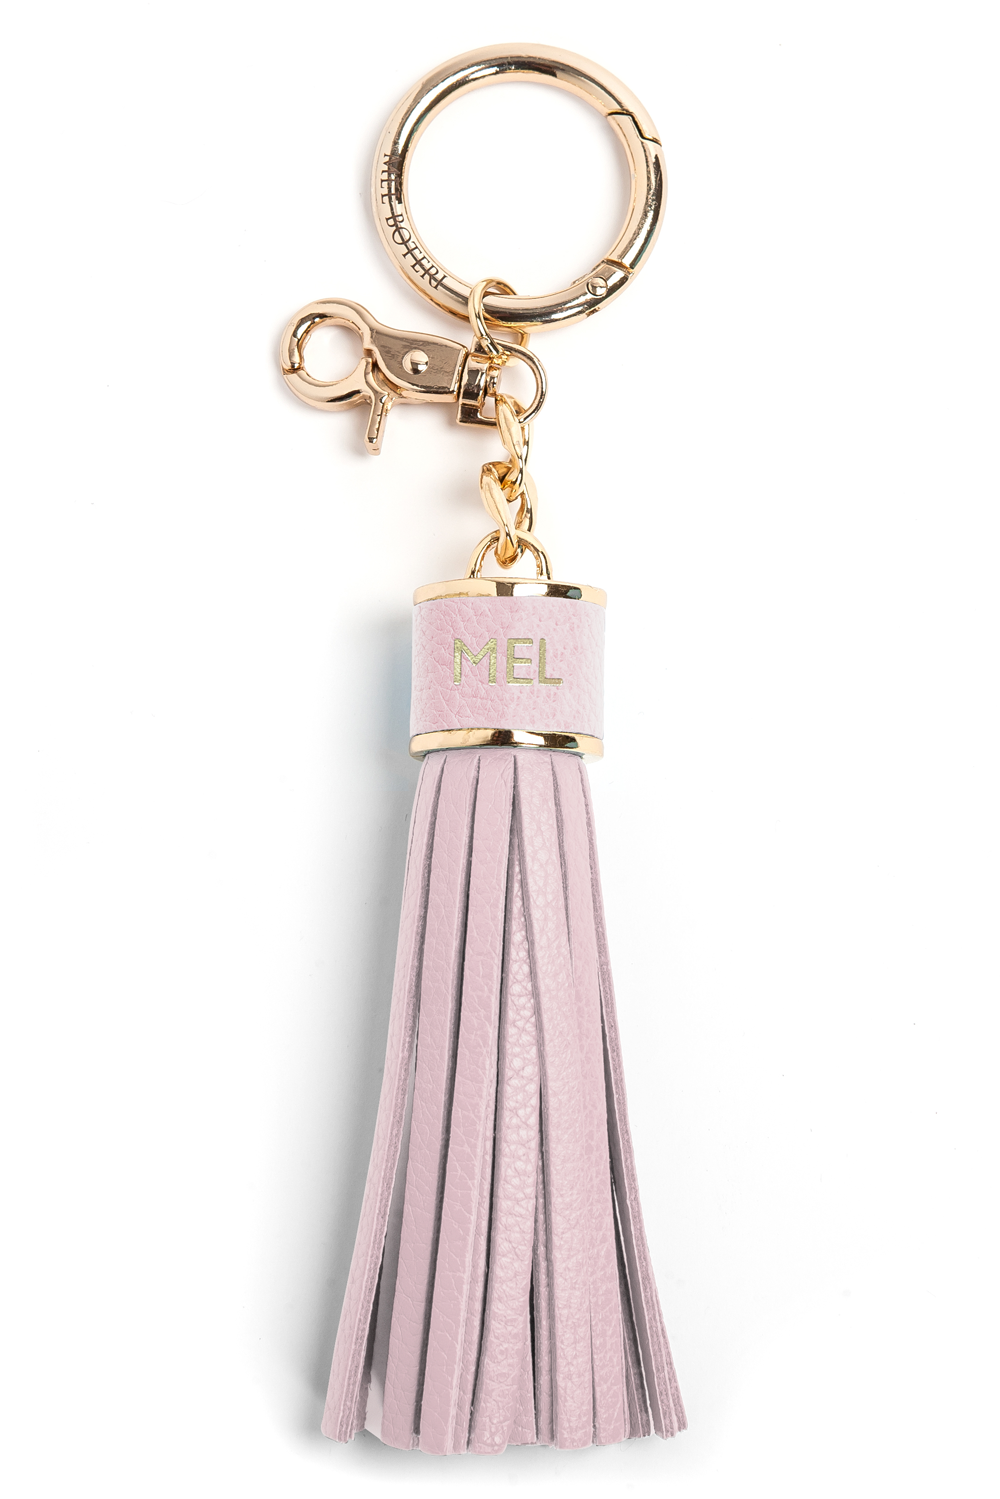 The Mel Boteri Pebbled-Leather Tassel Charm | Doll Leather With Gold Hardware | Mel Boteri Gift Ideas